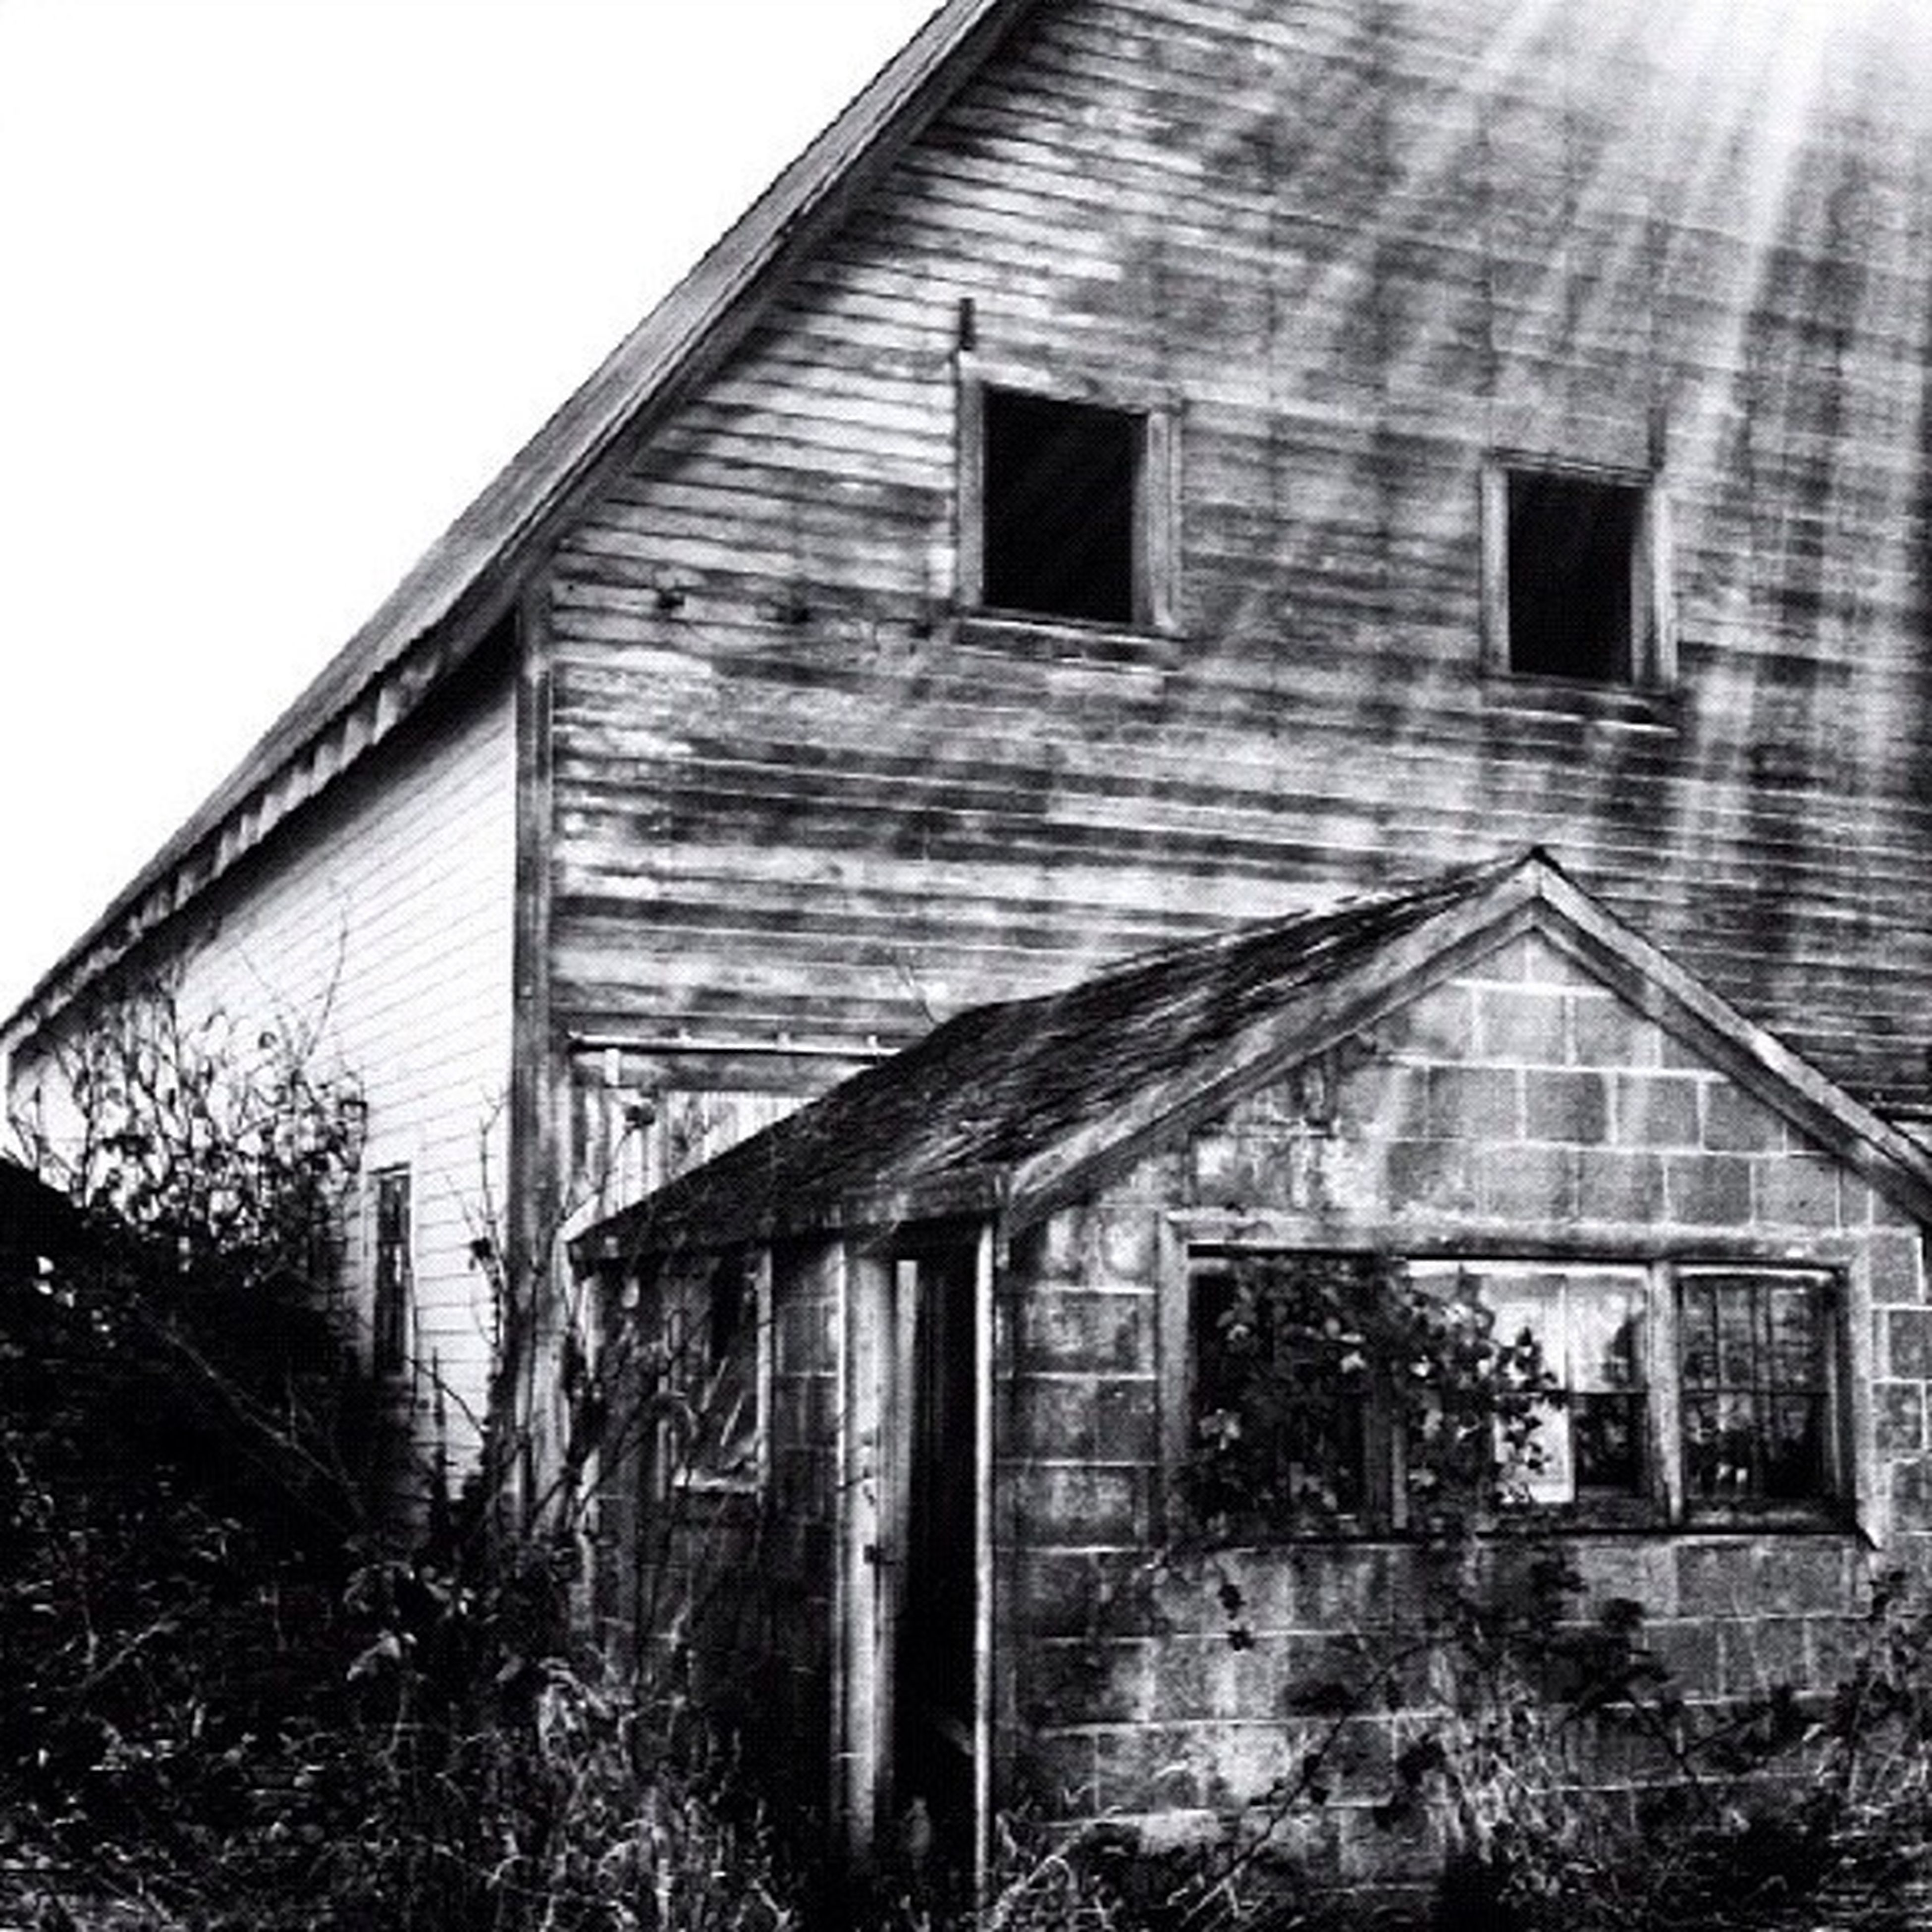 architecture, built structure, building exterior, window, house, abandoned, residential structure, low angle view, residential building, building, old, day, outdoors, damaged, no people, clear sky, weathered, obsolete, reflection, sky